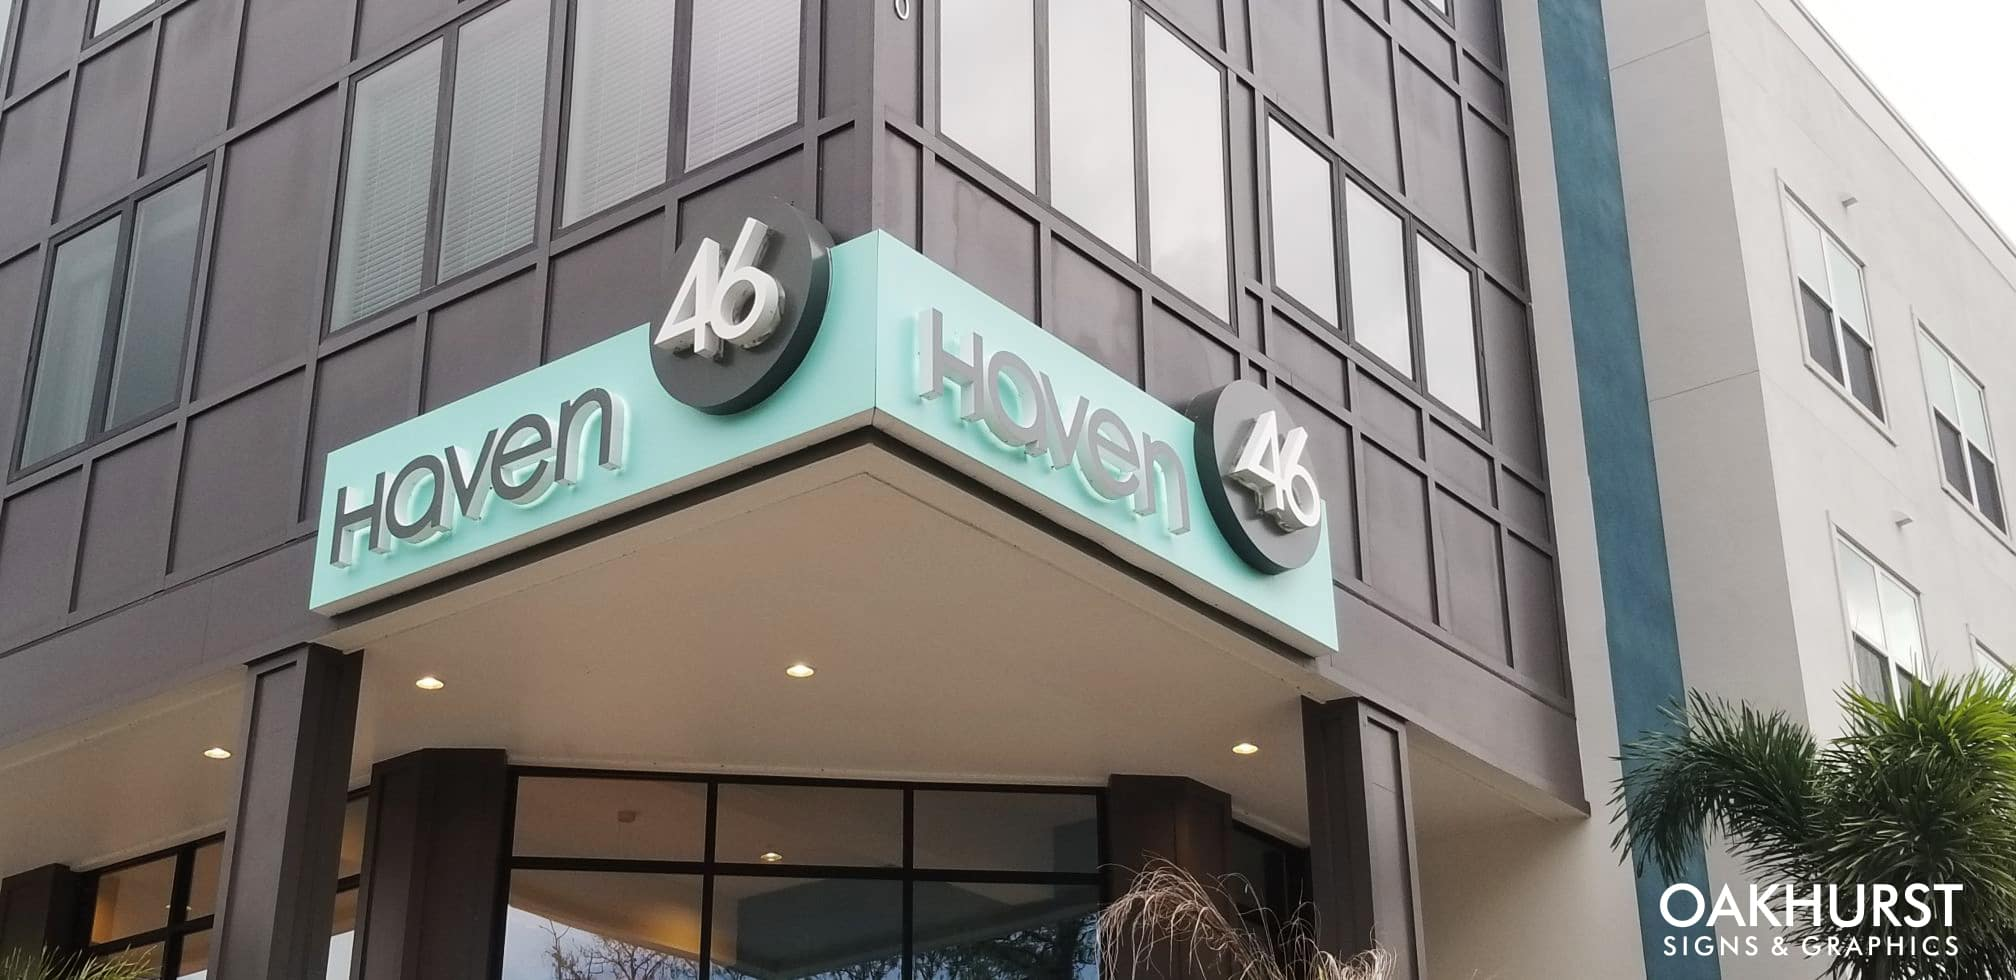 Haven 46 sign on building